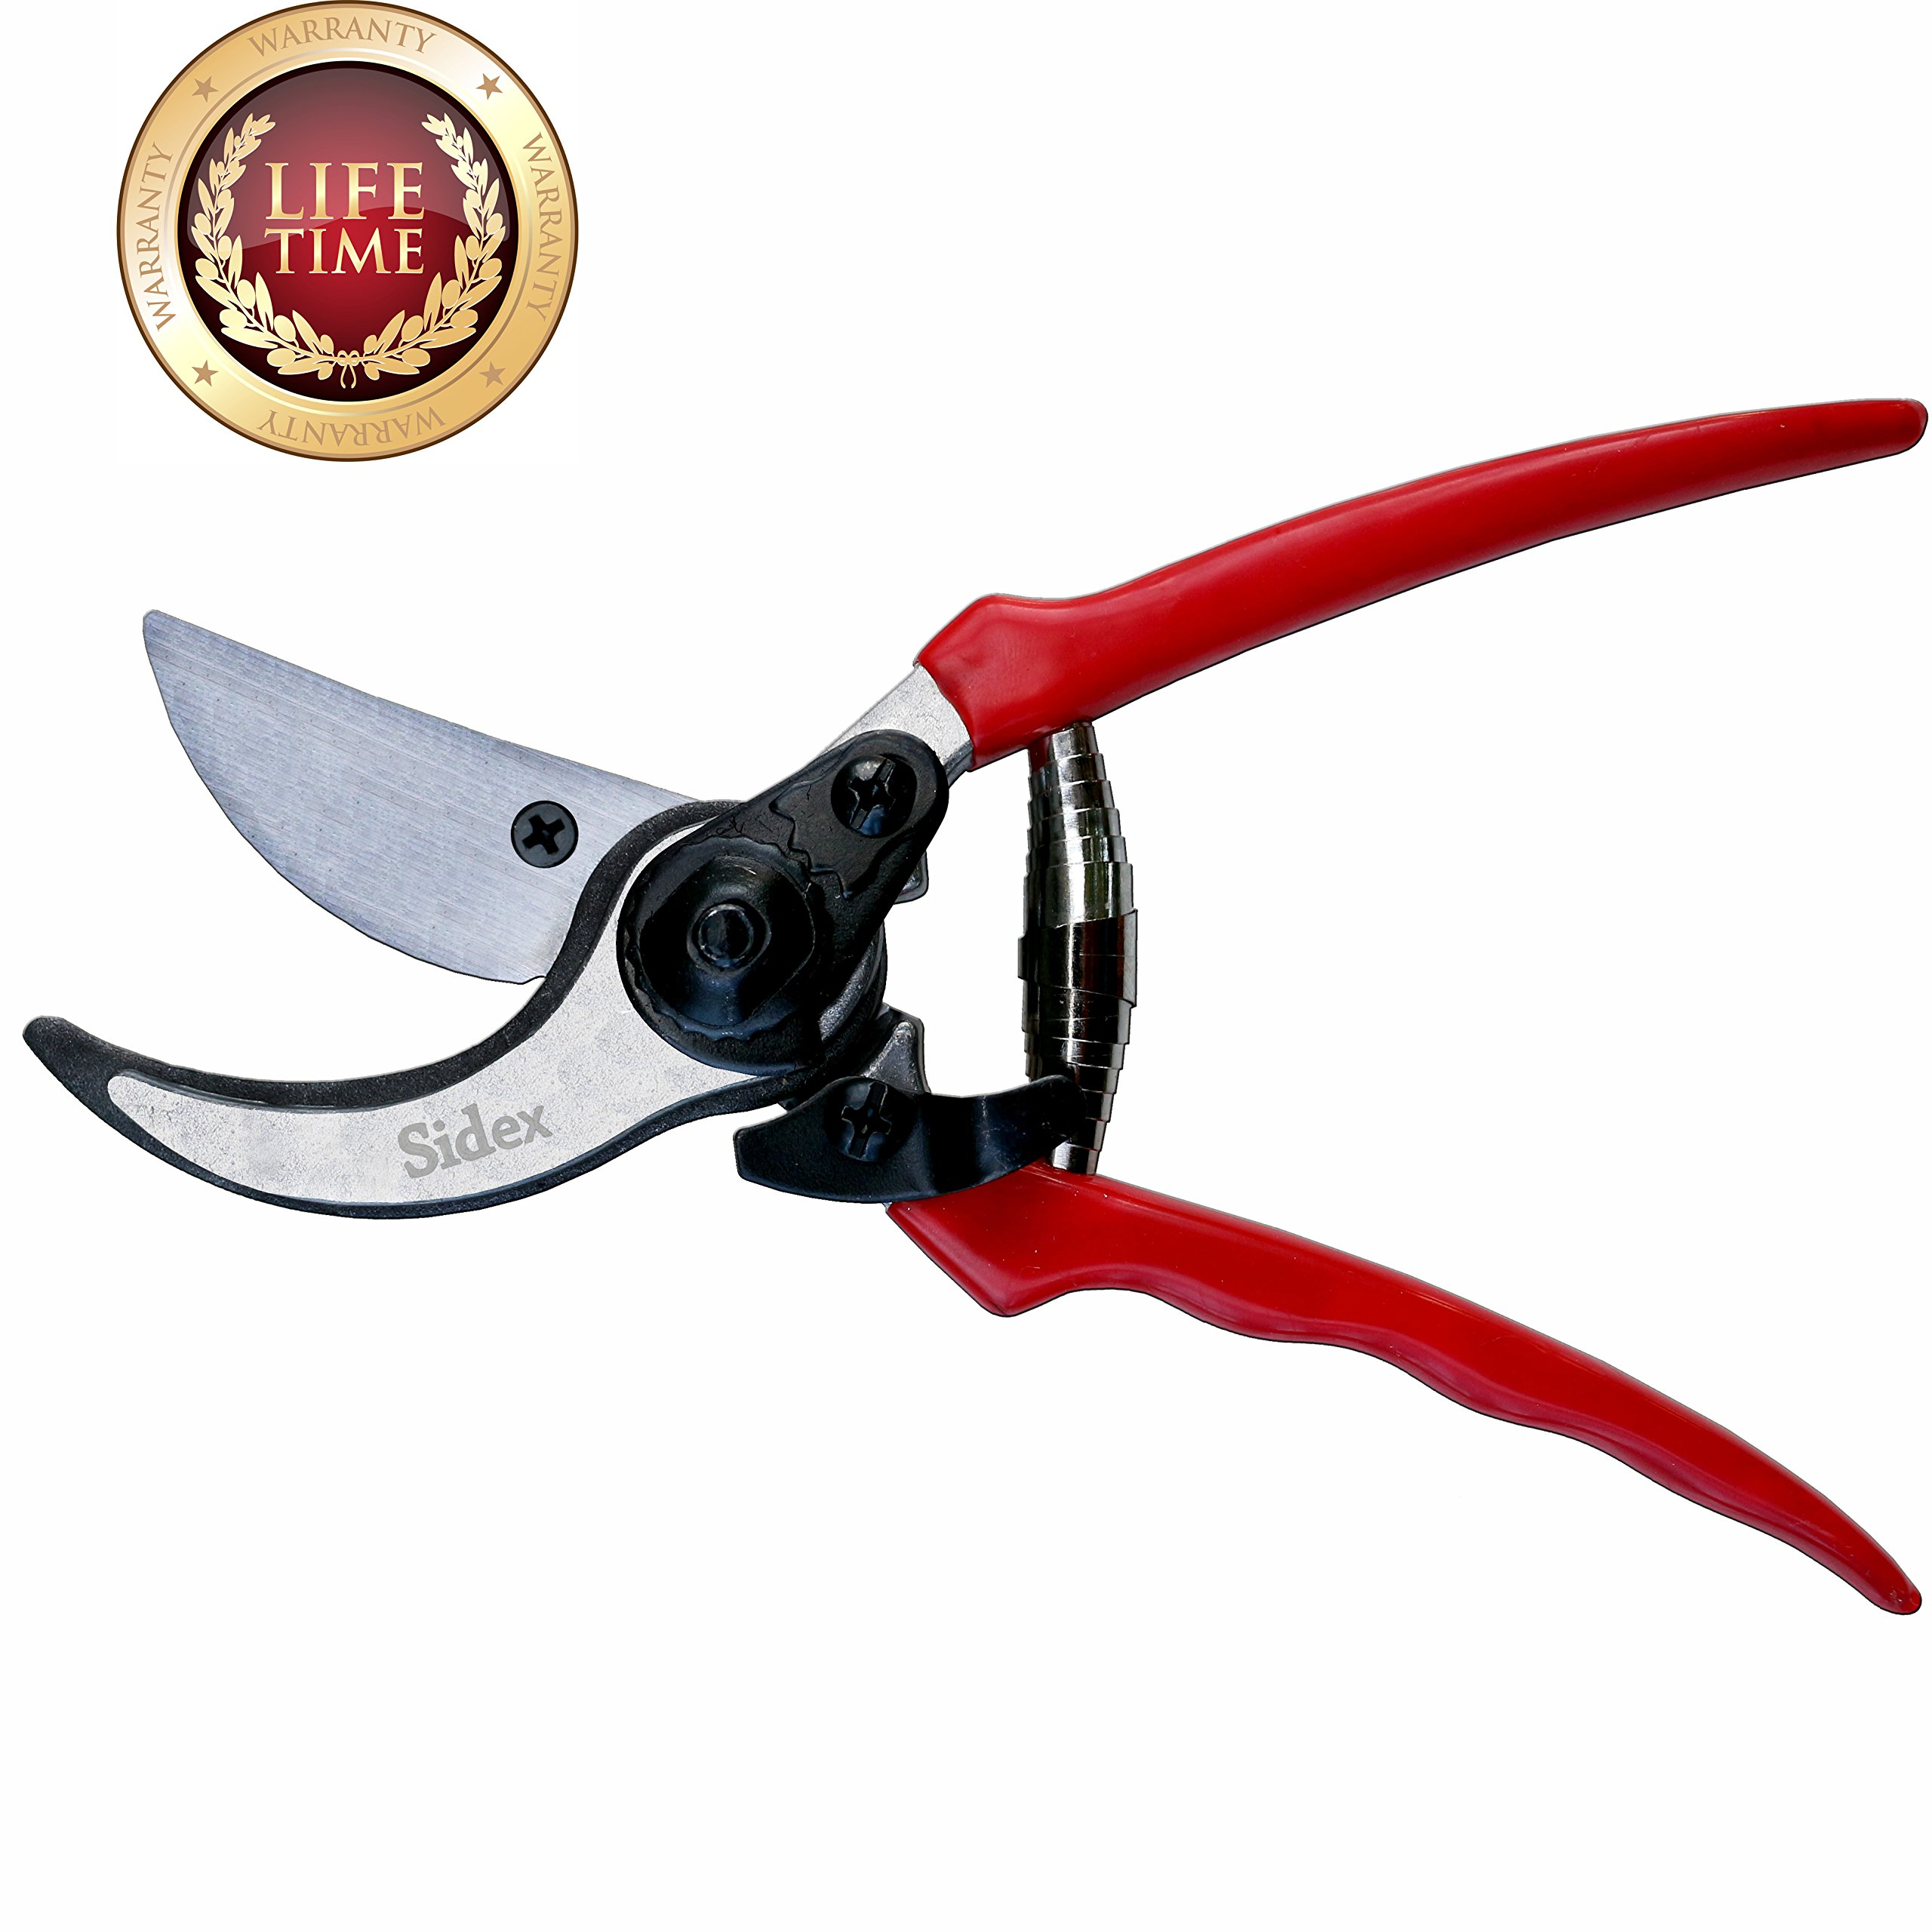 Amazon.com : Sidex - Classic Garden Shears - Hand Pruning Tree and Hedge  Scissors, Bypass Shear with Safety Lock : Garden & Outdoor